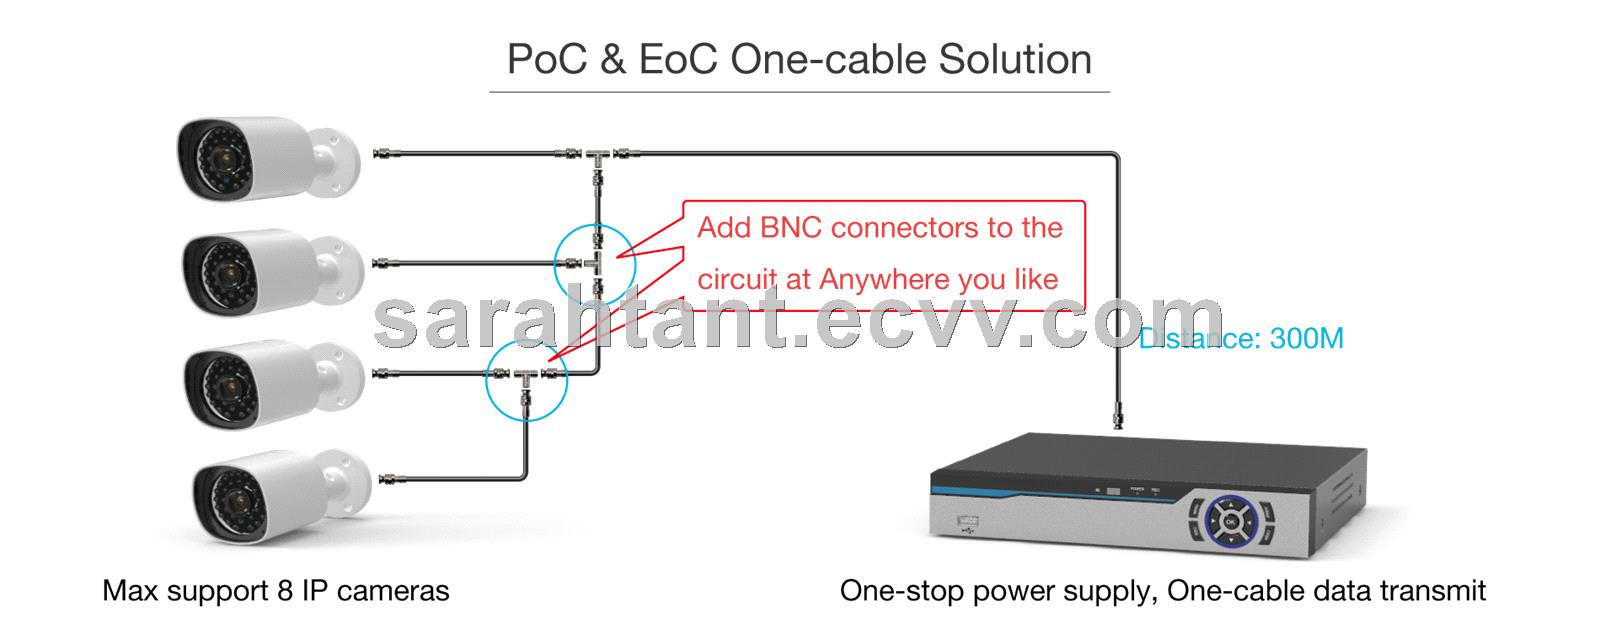 Poc Eoc Ip Camera Nvr Security System Purchasing Souring Agent Lock Wiring Diagram Along With Bnc Cable Connectors Service Platform